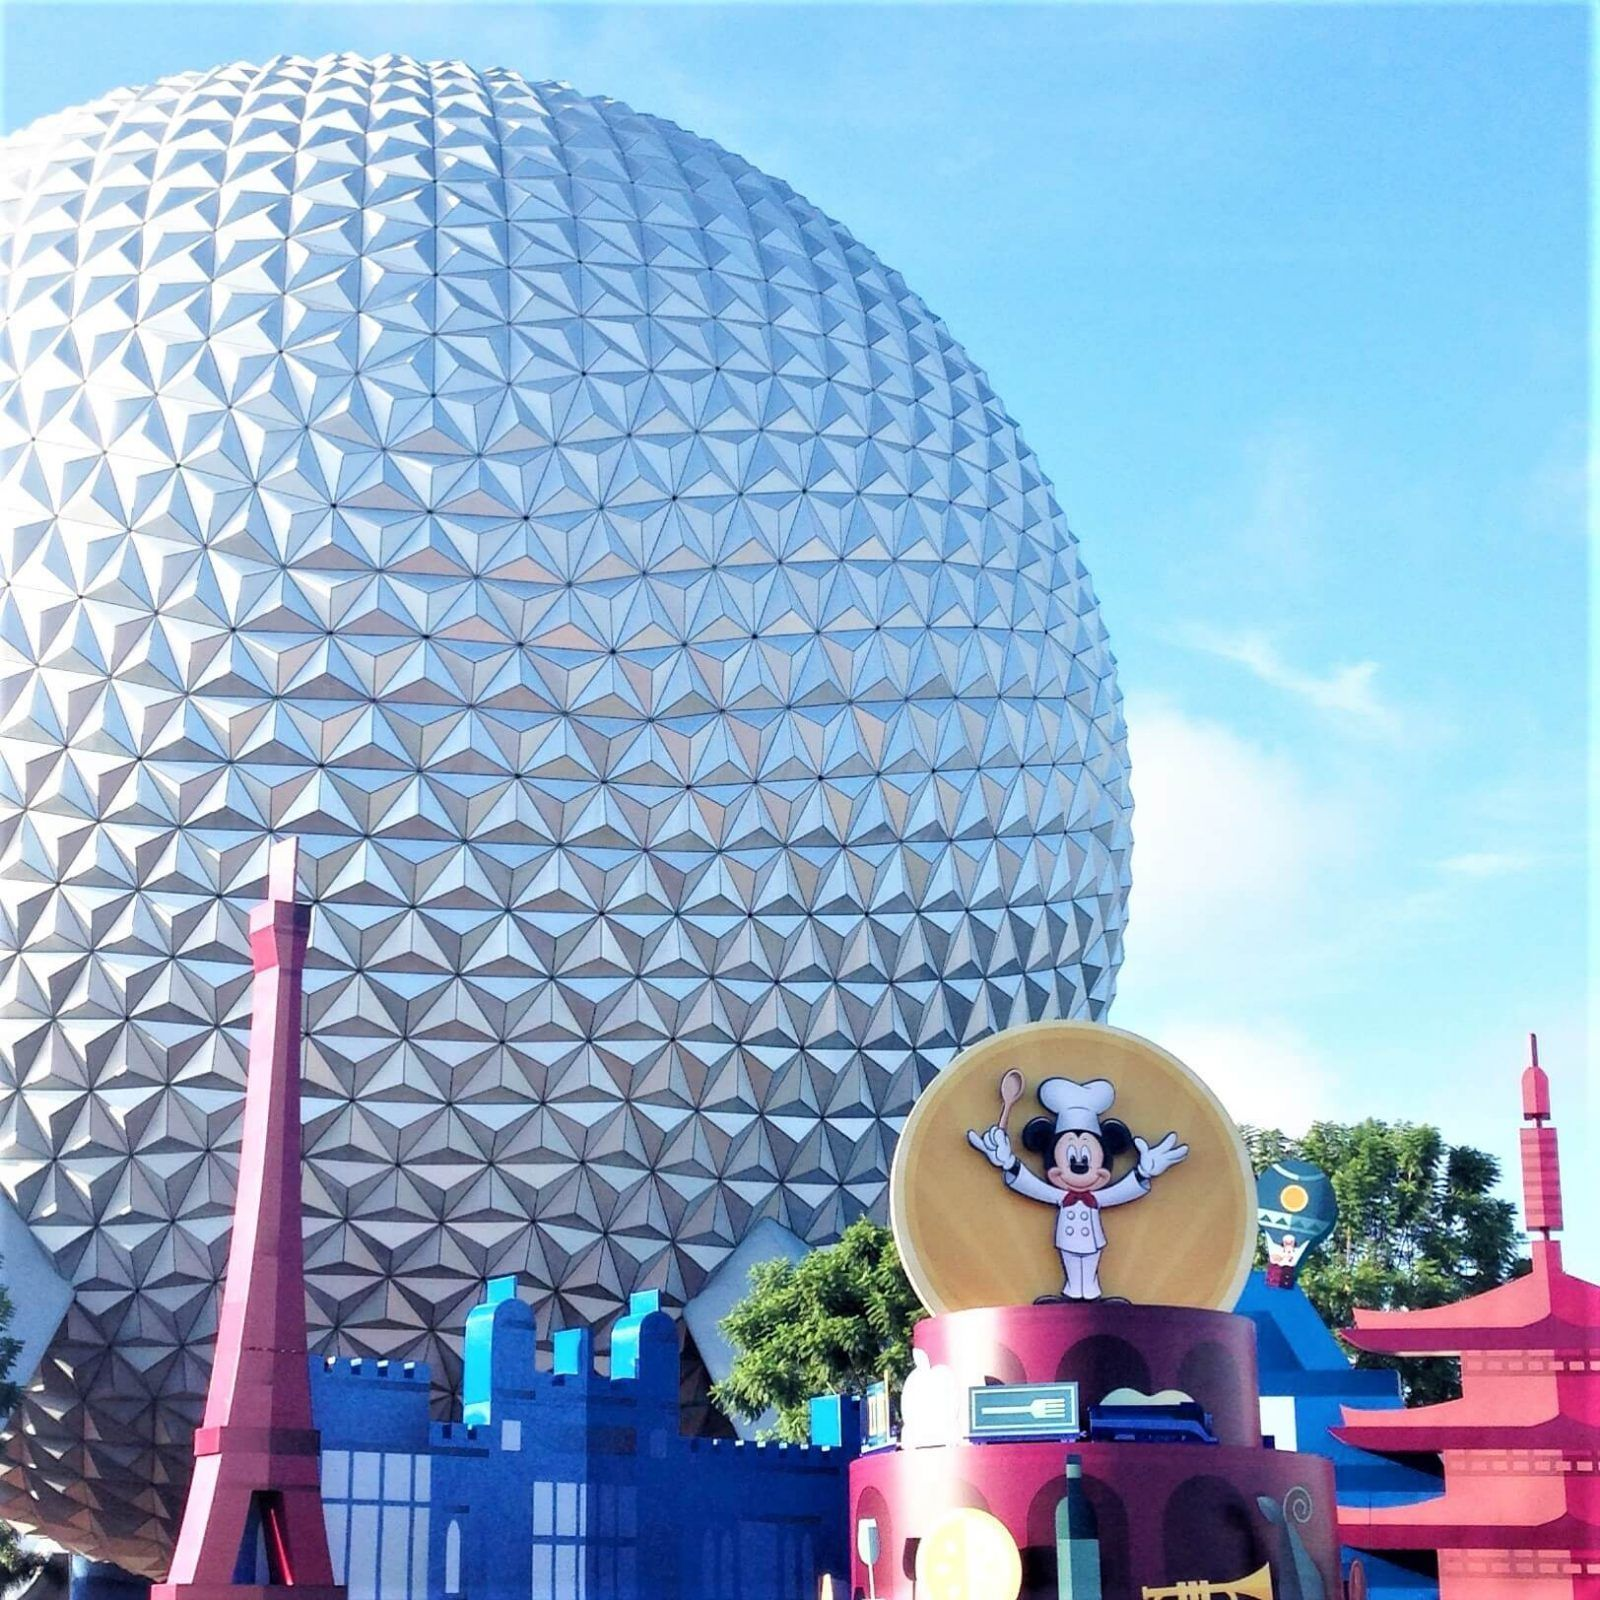 2020 Epcot Food And Wine Festival.The Best Time To Go To Disney World In 2019 2020 Free